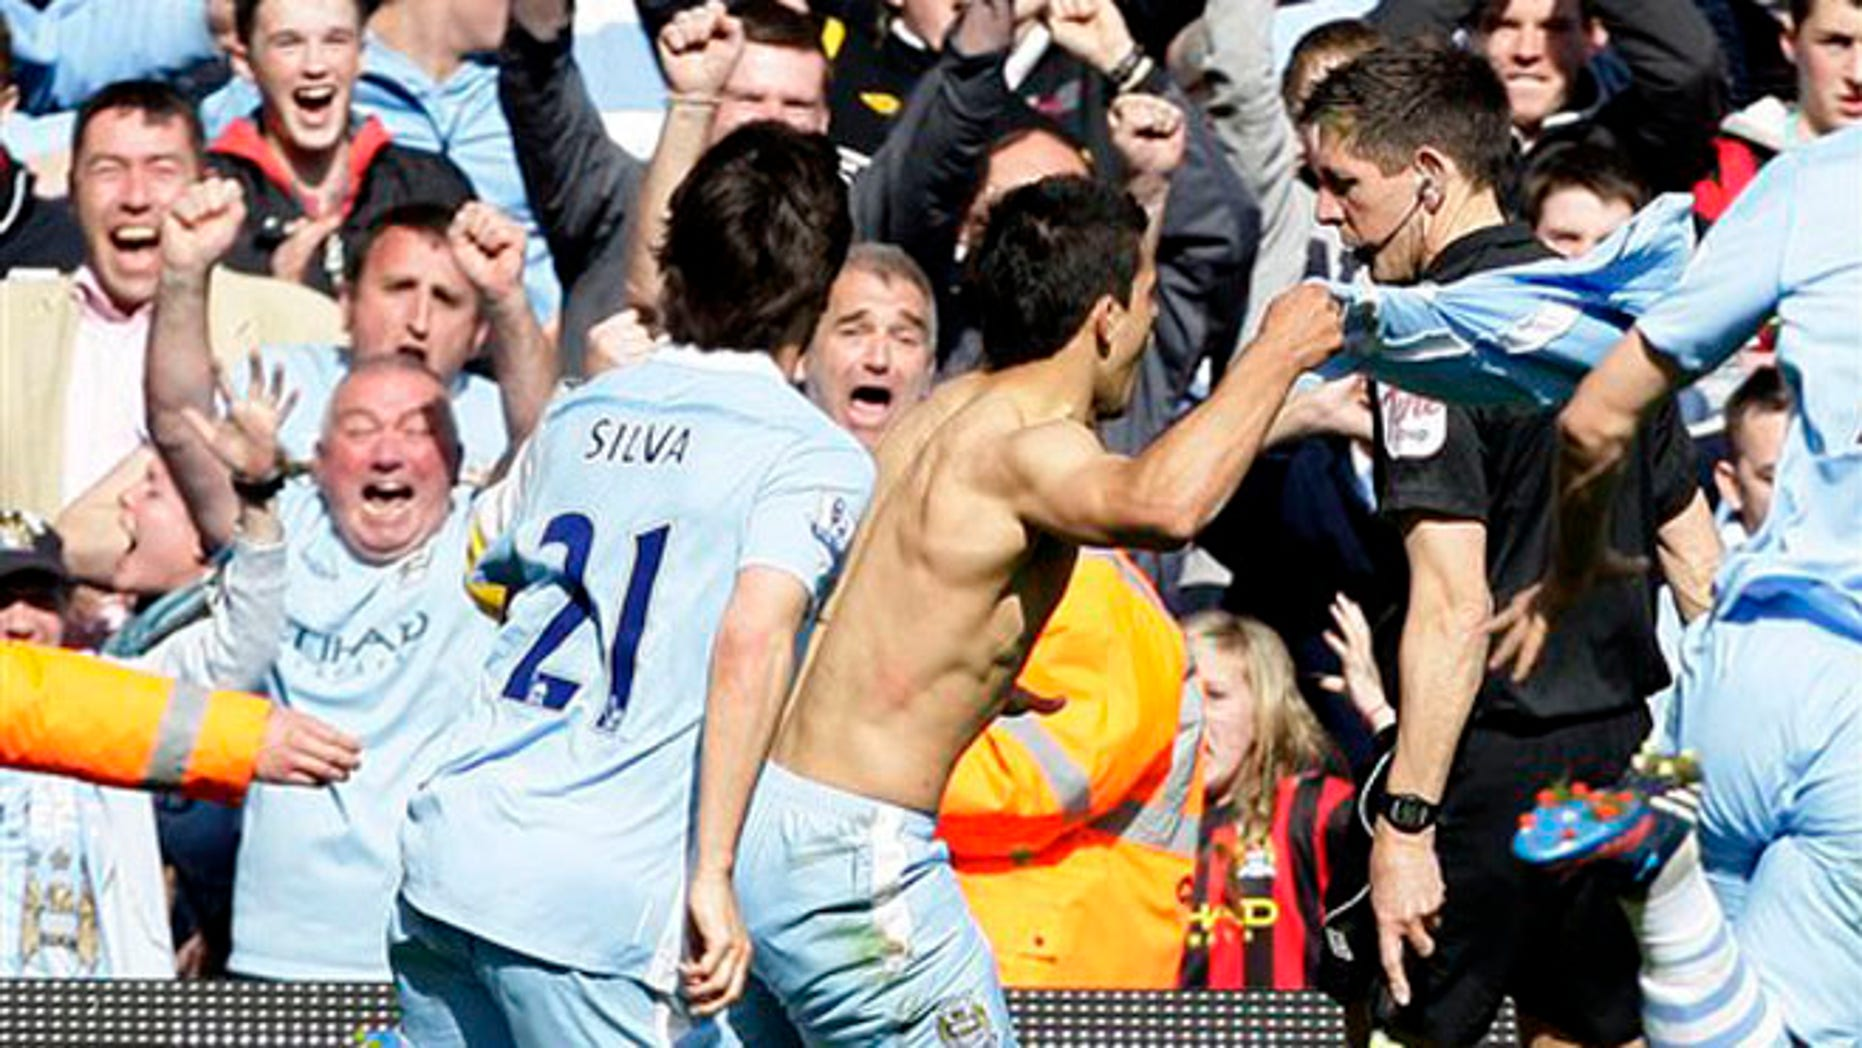 Sergio Aguero celebrates after scoring against Queens Park Rangers to win the Premier League title for Manchester City, May 13, 2012. (Foto AP/Jon Super)